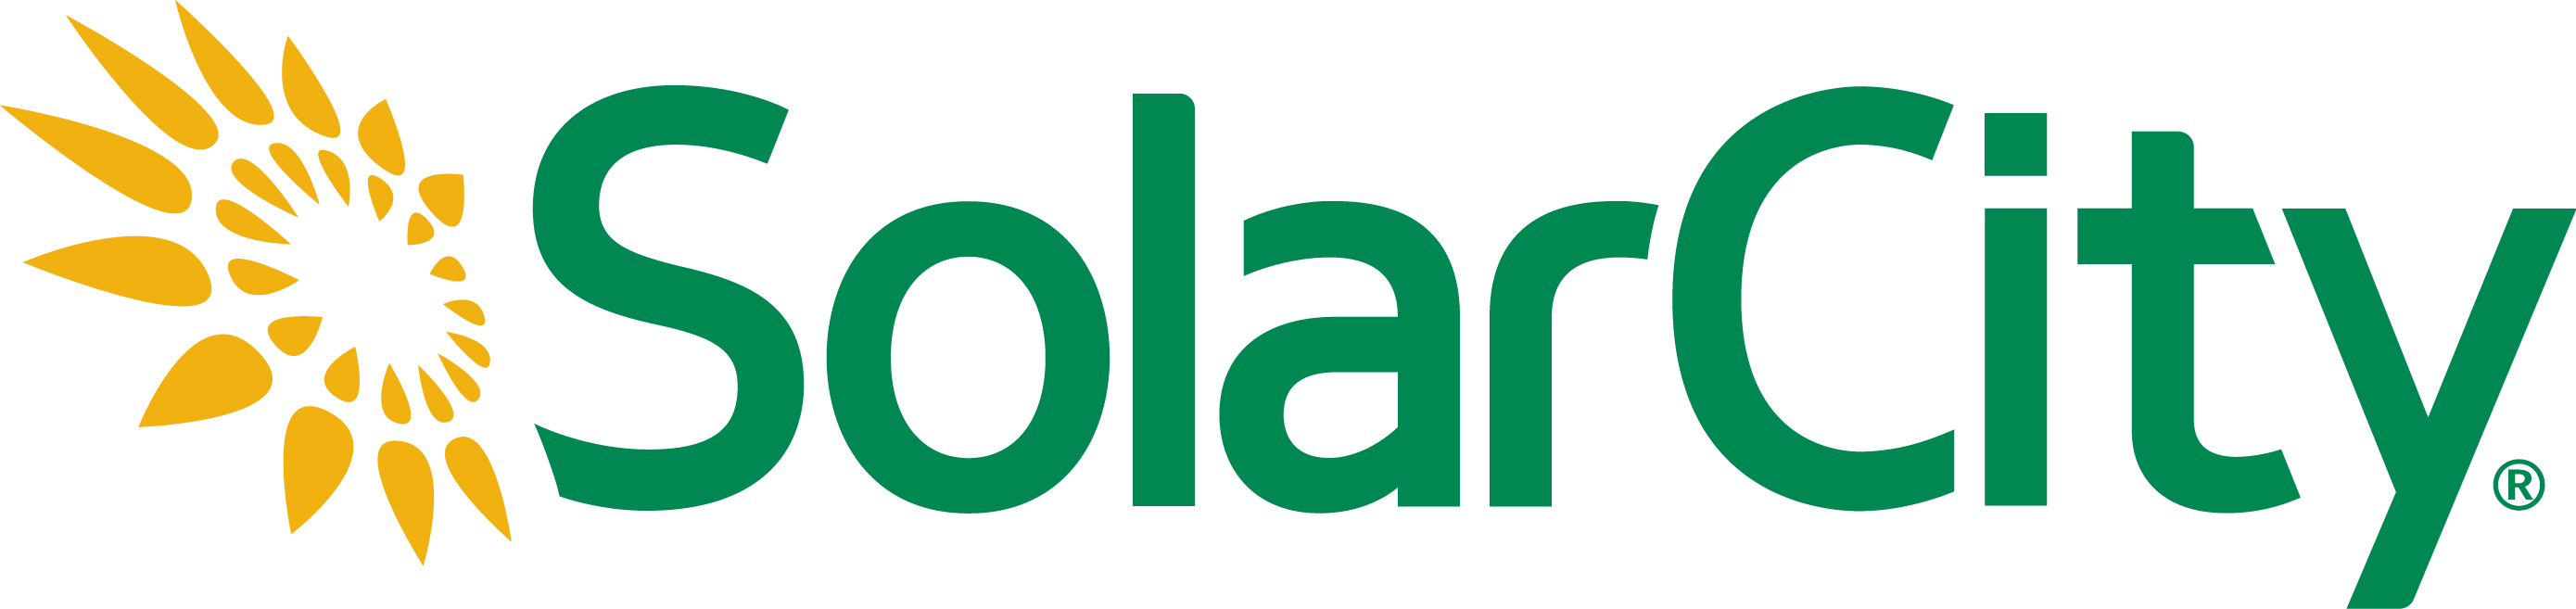 SolarCity Corporation logo